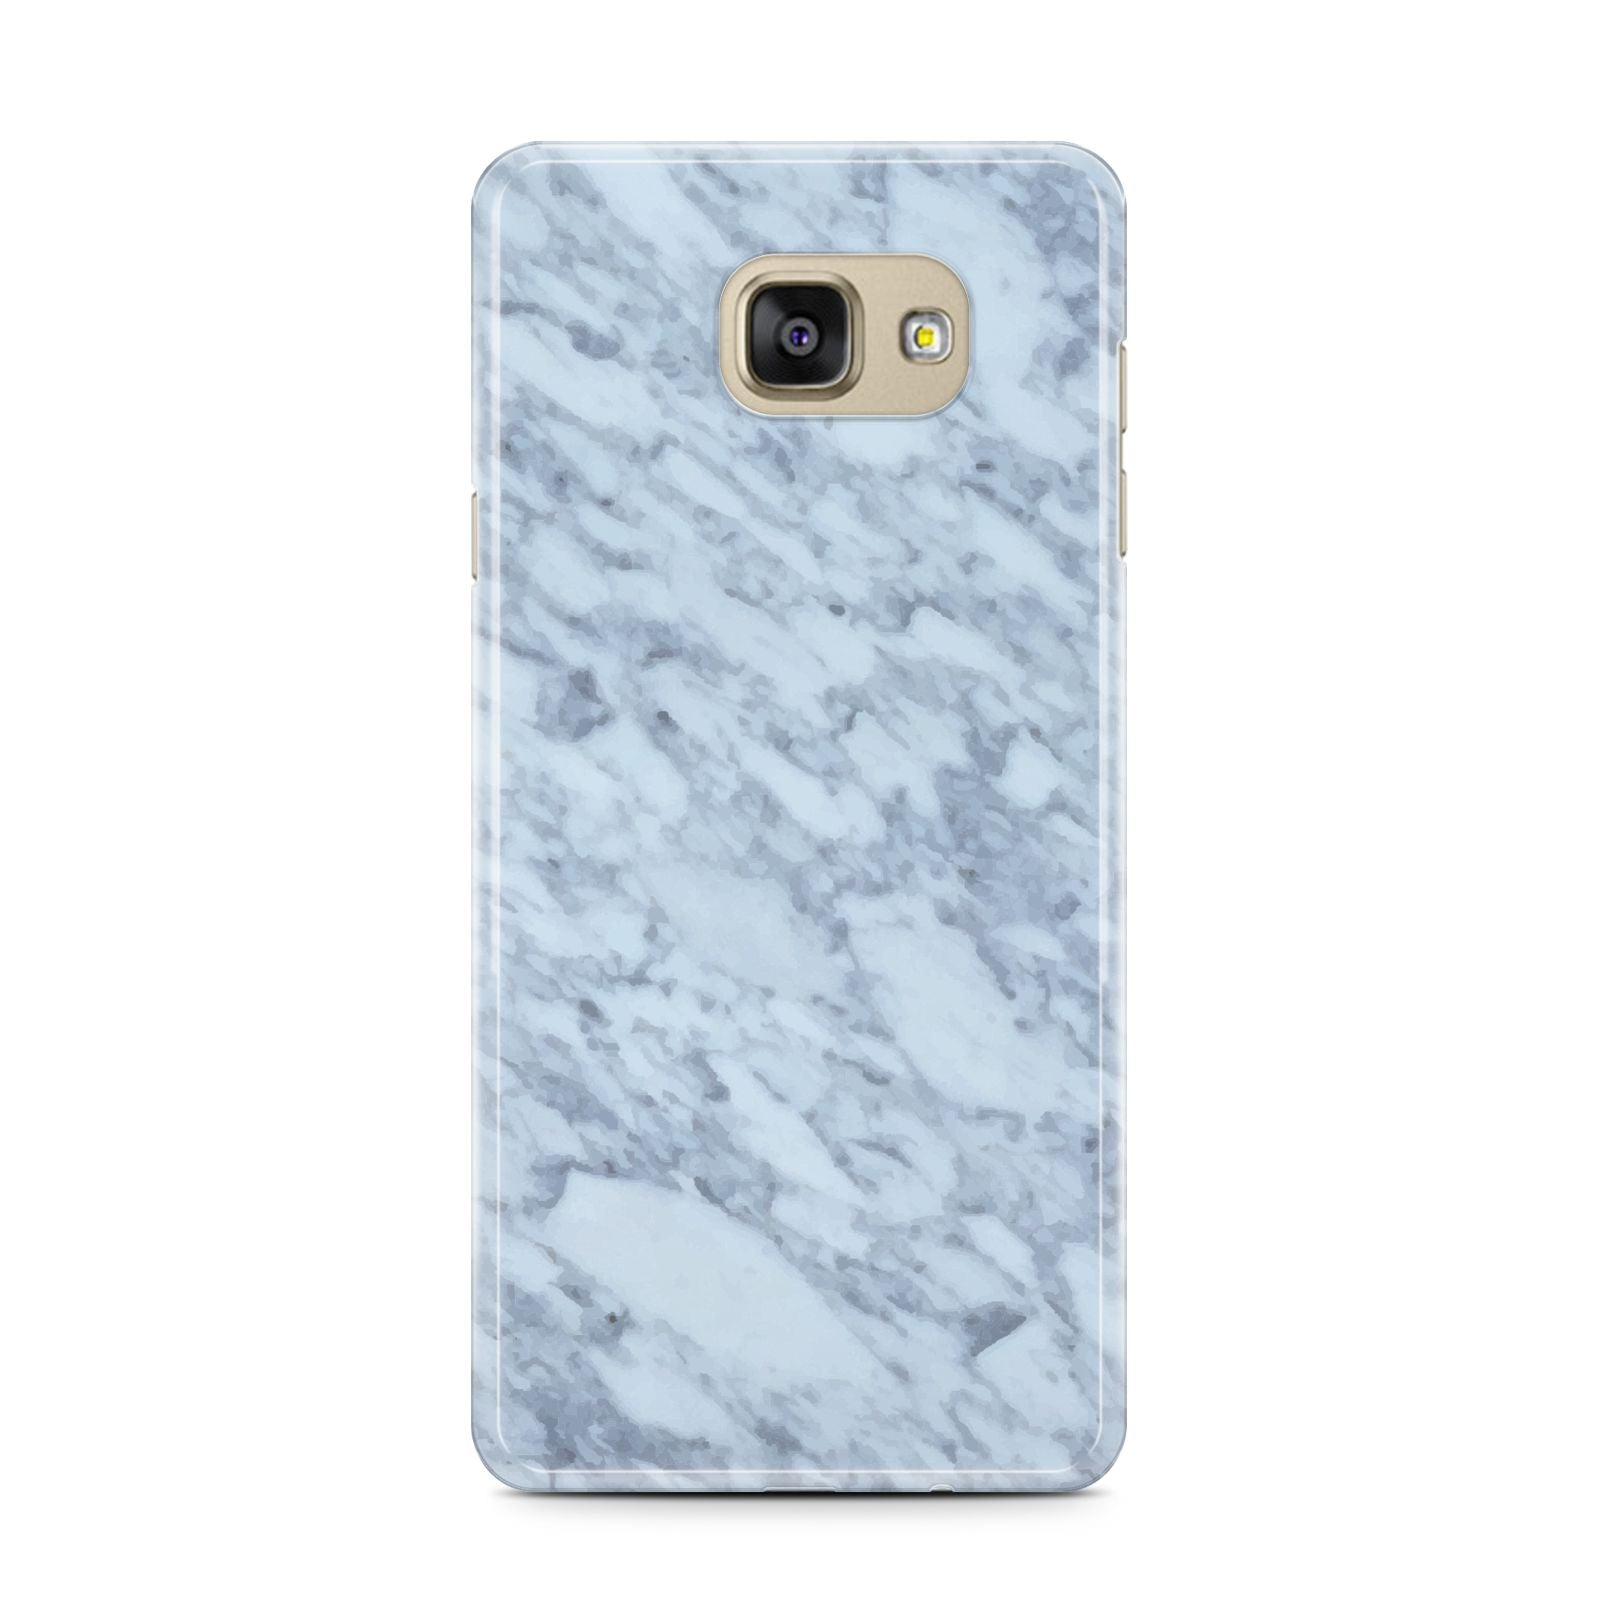 Faux Marble Grey 2 Samsung Galaxy A7 2016 Case on gold phone